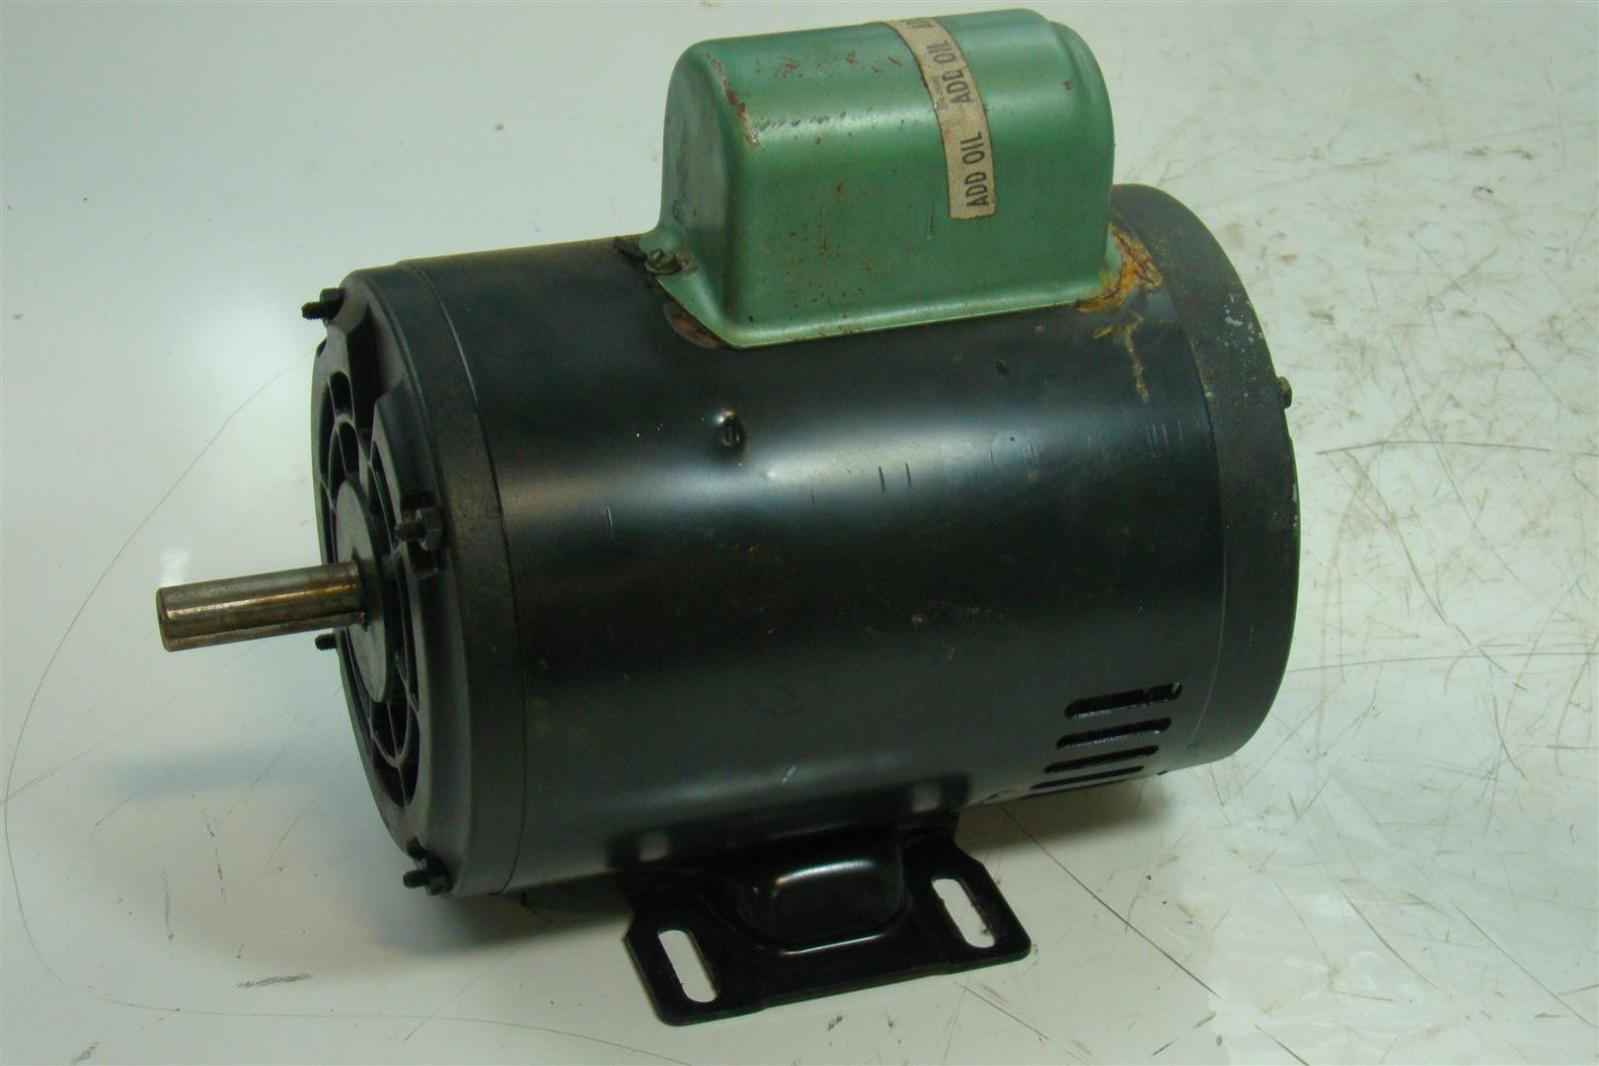 Dayton electric motor 2hp single phase 115 230v 3450rpm for 2 hp electric motor single phase